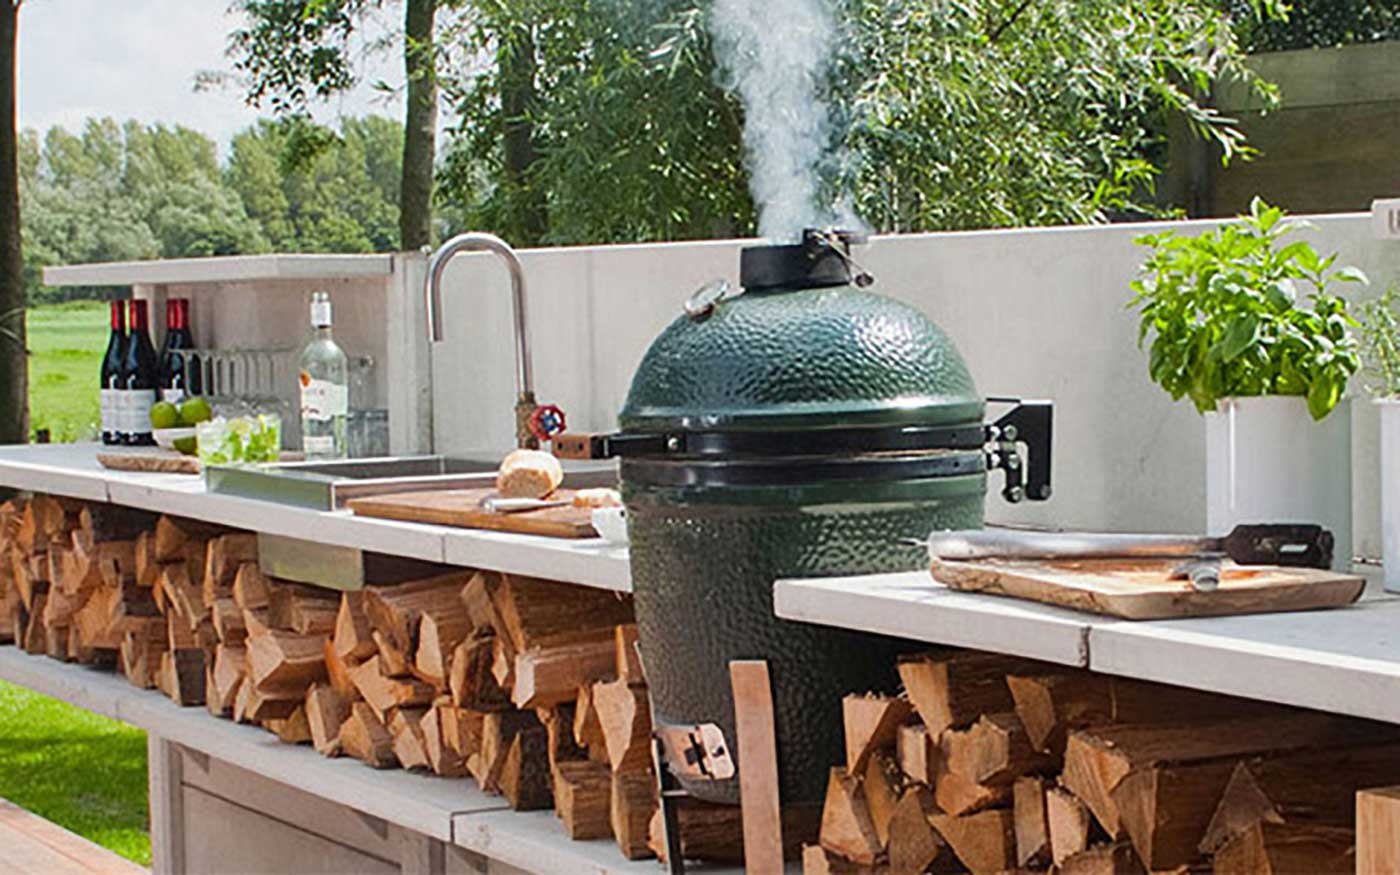 Big Green Egg grill at Wayland Home and Design